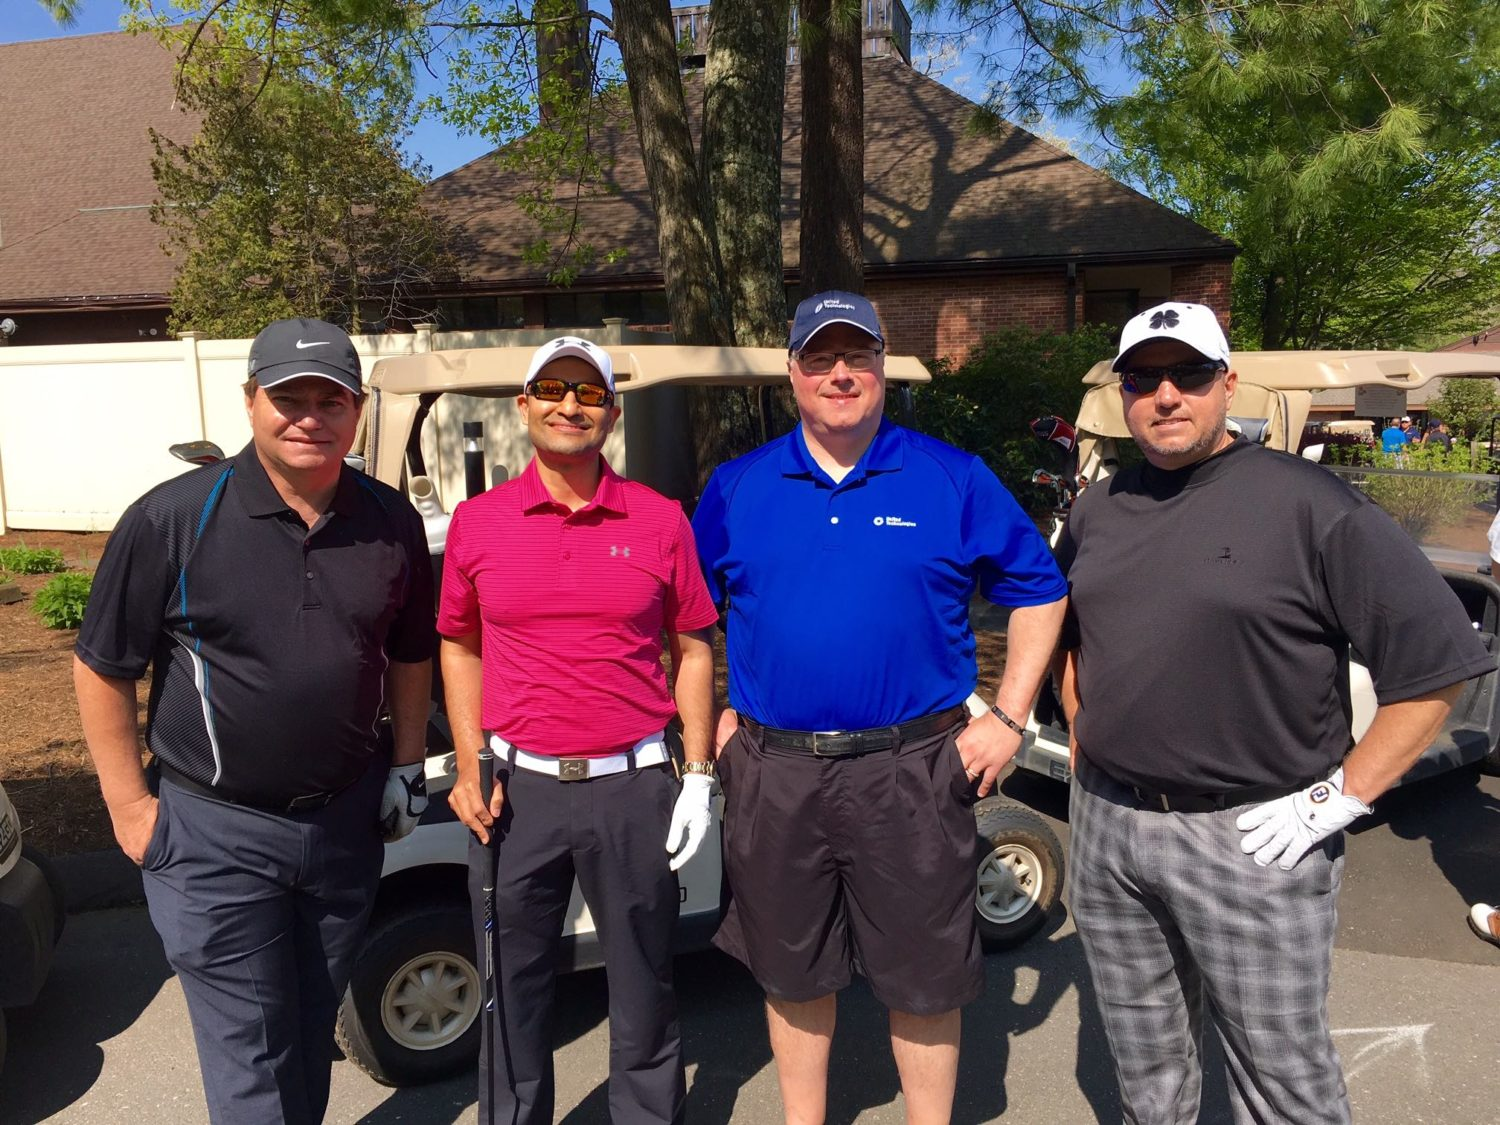 From left: Tom Corbin (RGBSI), Ravi Kumar (RGBSI), Steve Bohlman (UTC), Scott Aicher (RGBSI) at the start of the tournament